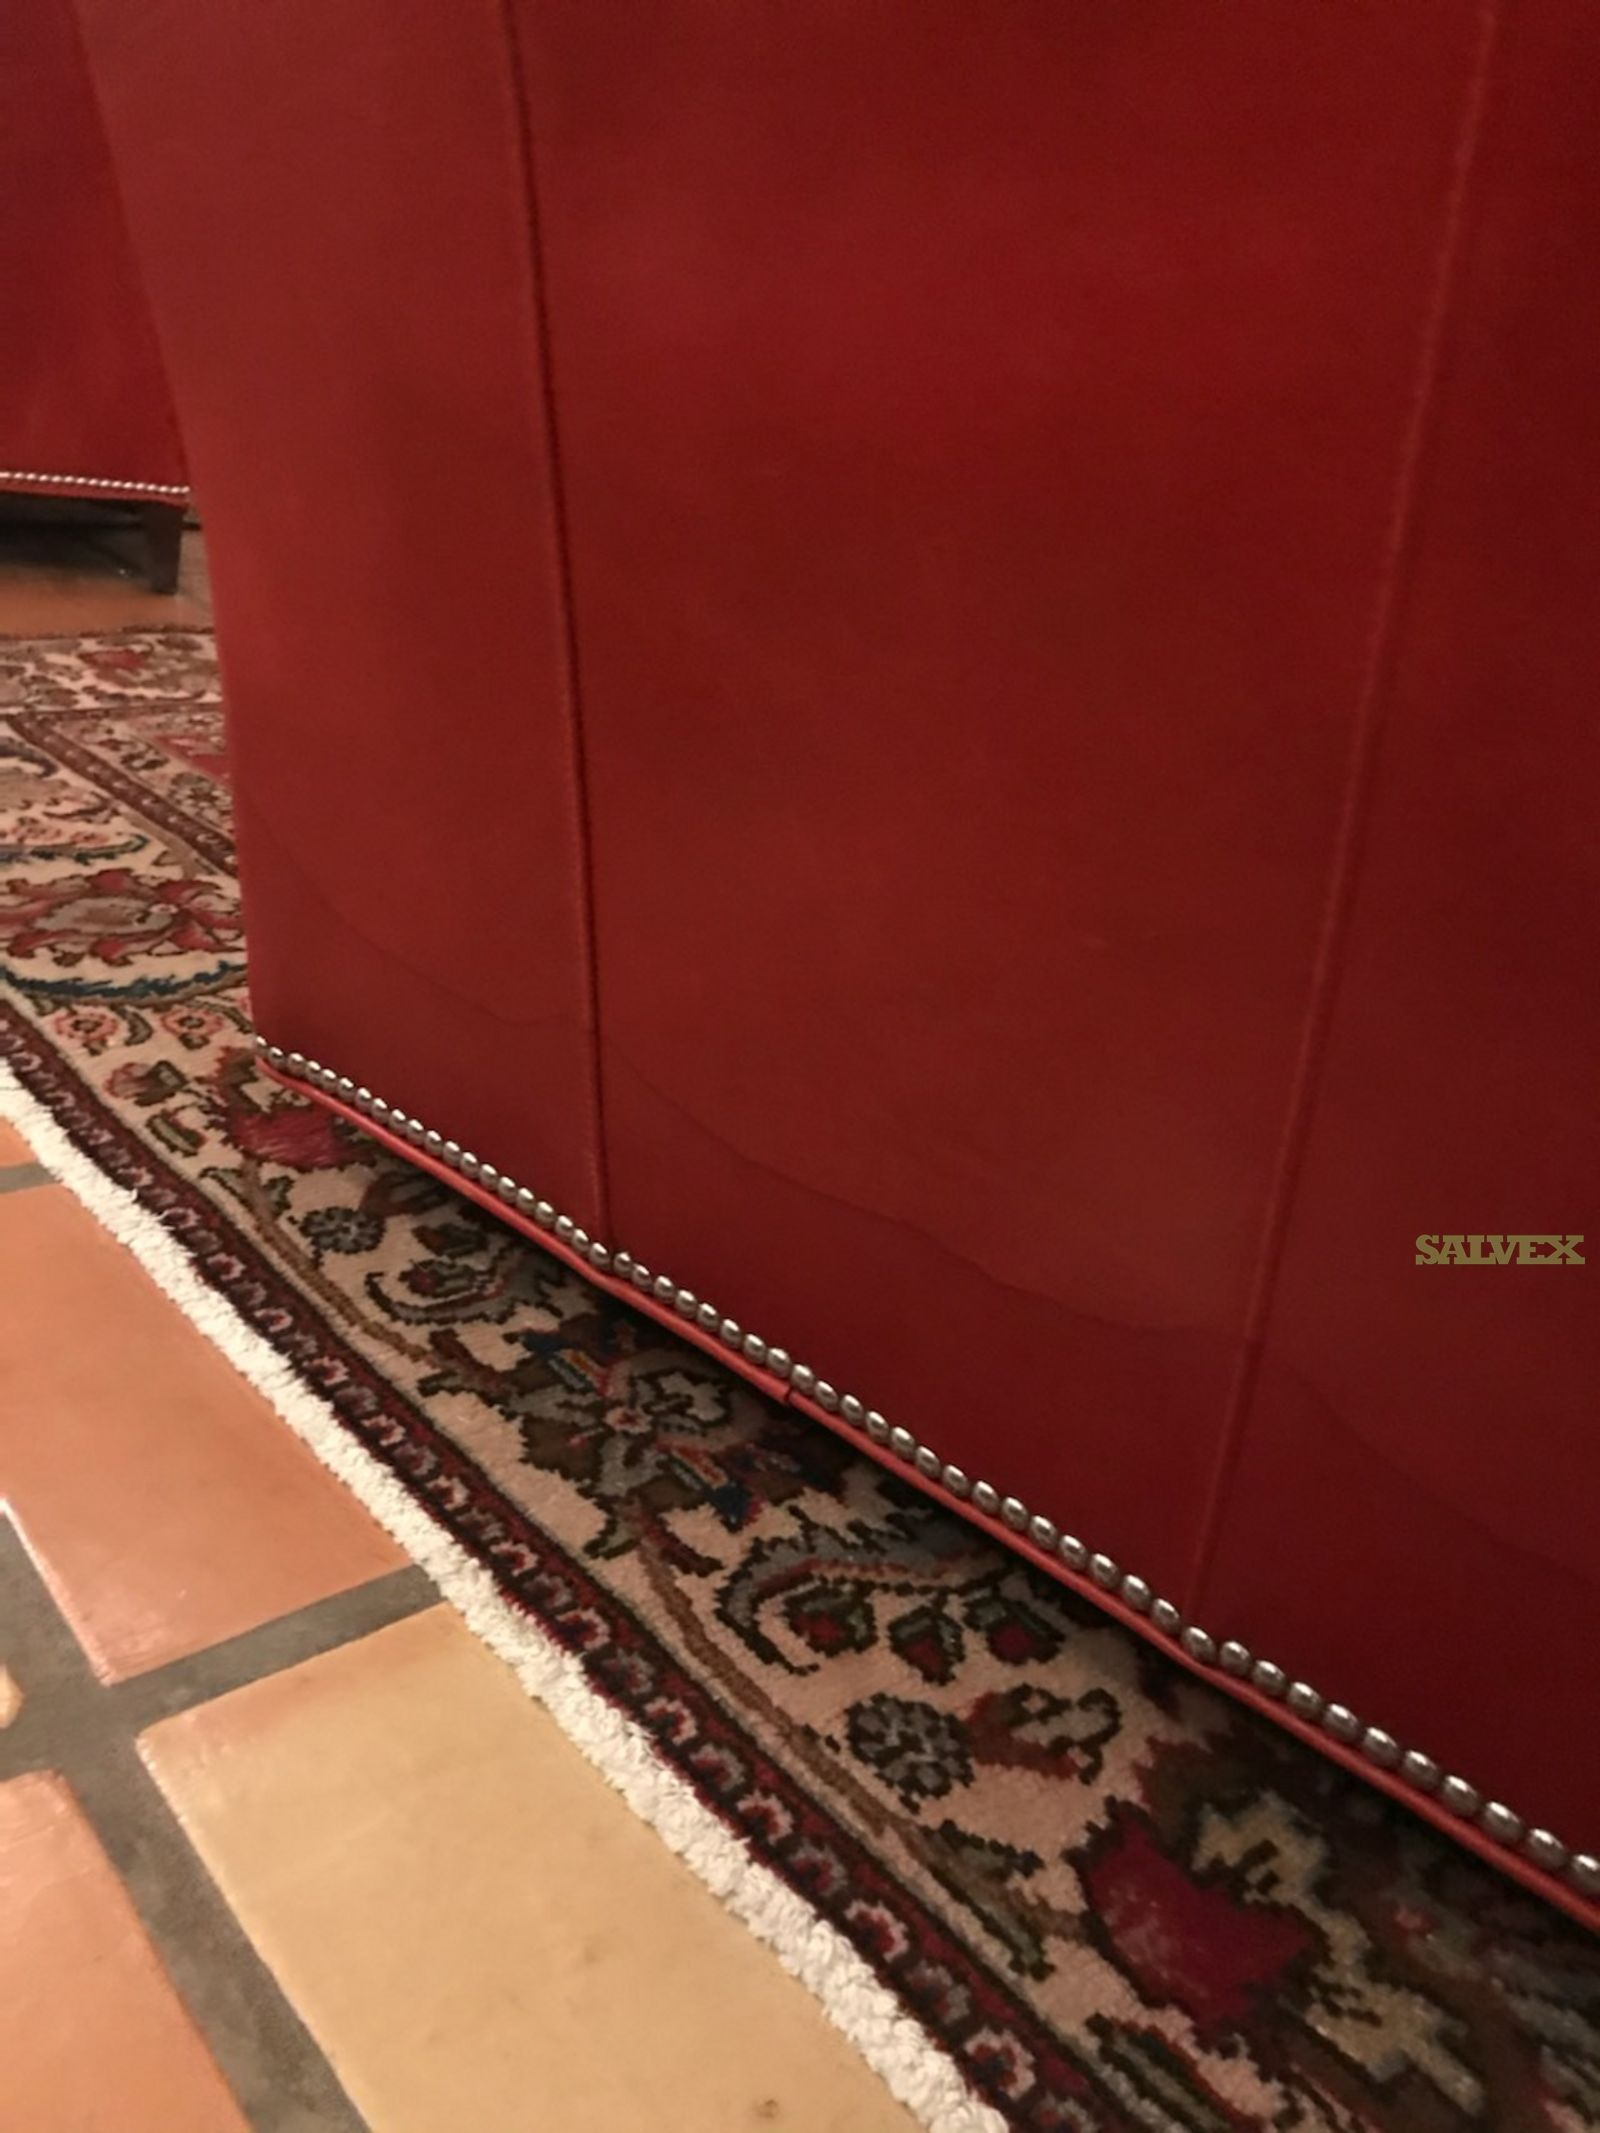 Waldrop Rugs and Damaged Swivel Chair